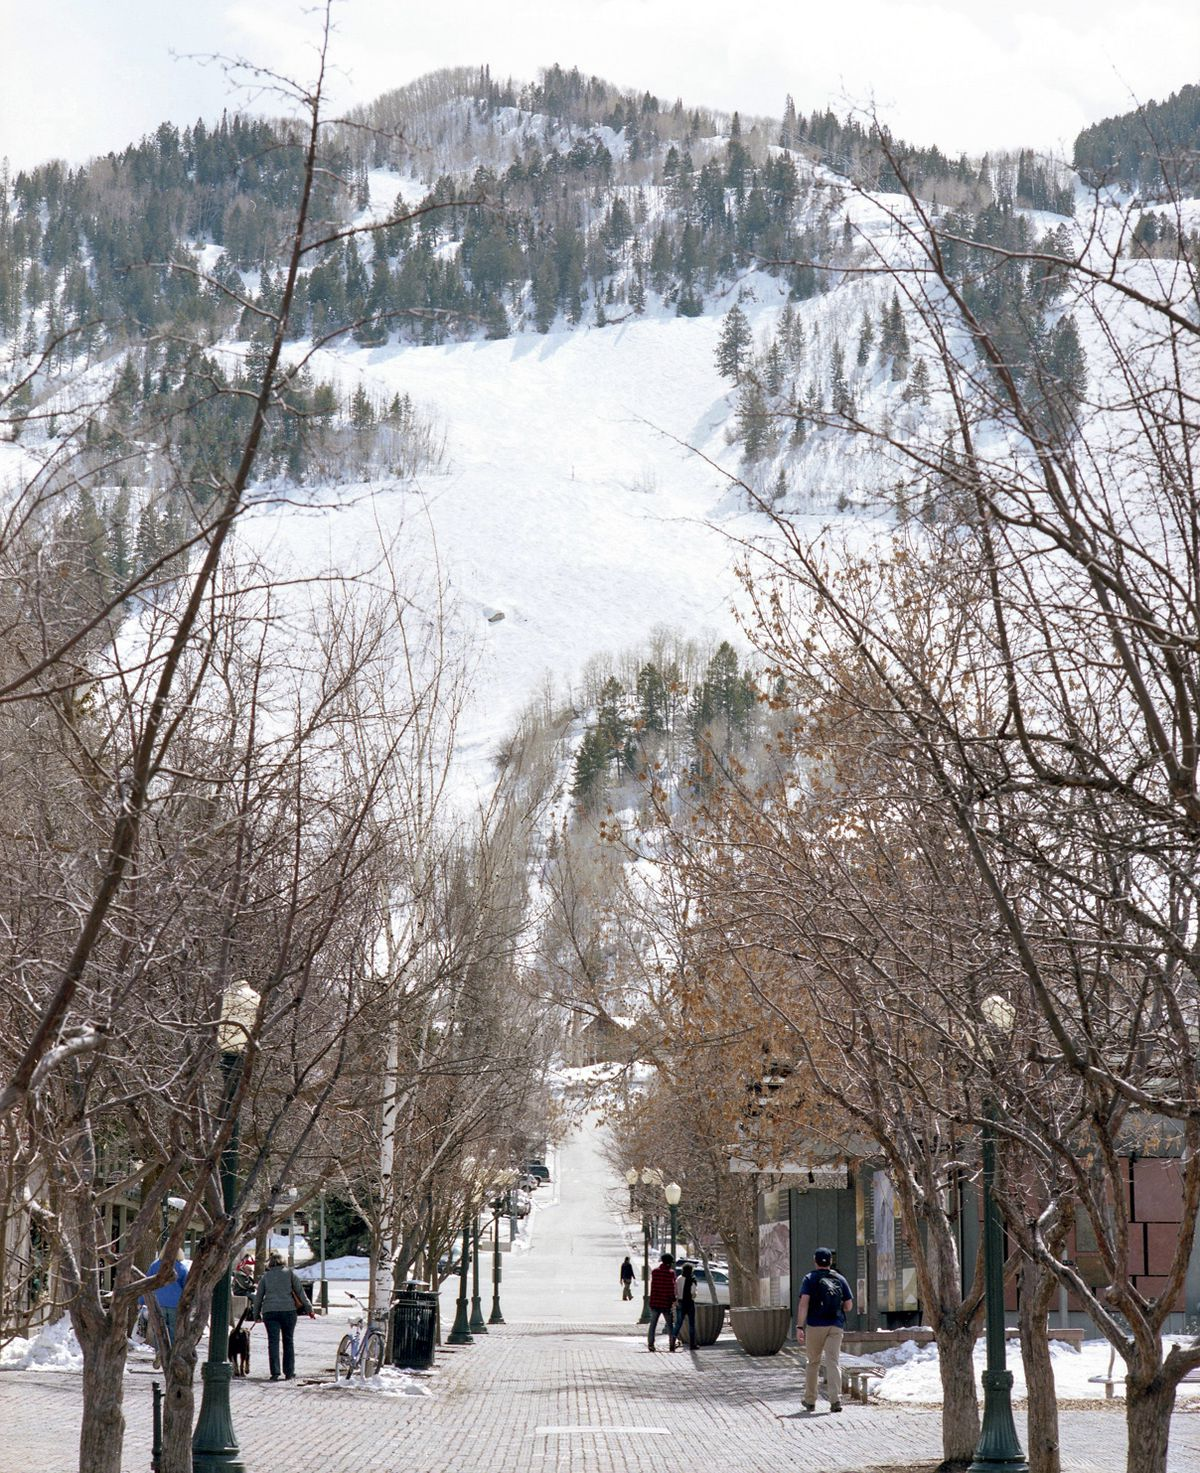 View of a mountain covered in snow from the town with trees without leaves in the foreground.